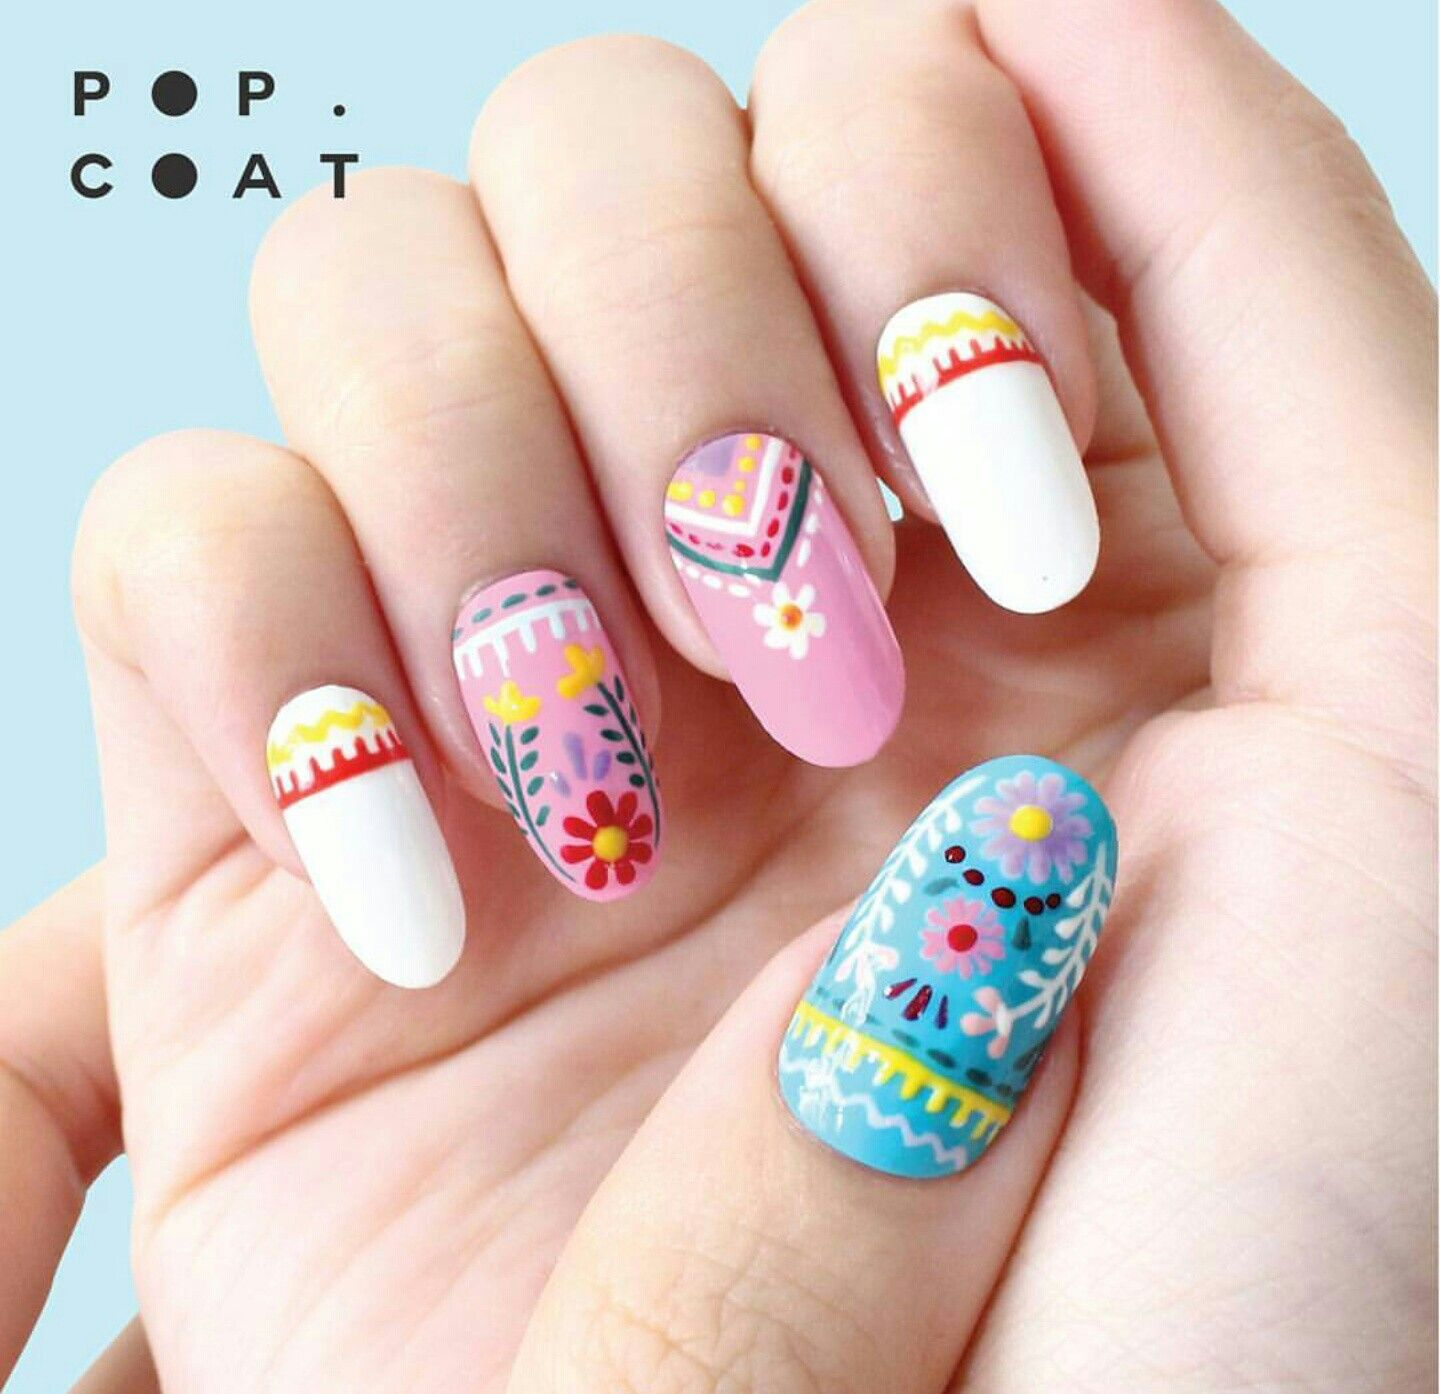 Embroidery inspired floral nail art | Uñas | Pinterest | Diseños de ...